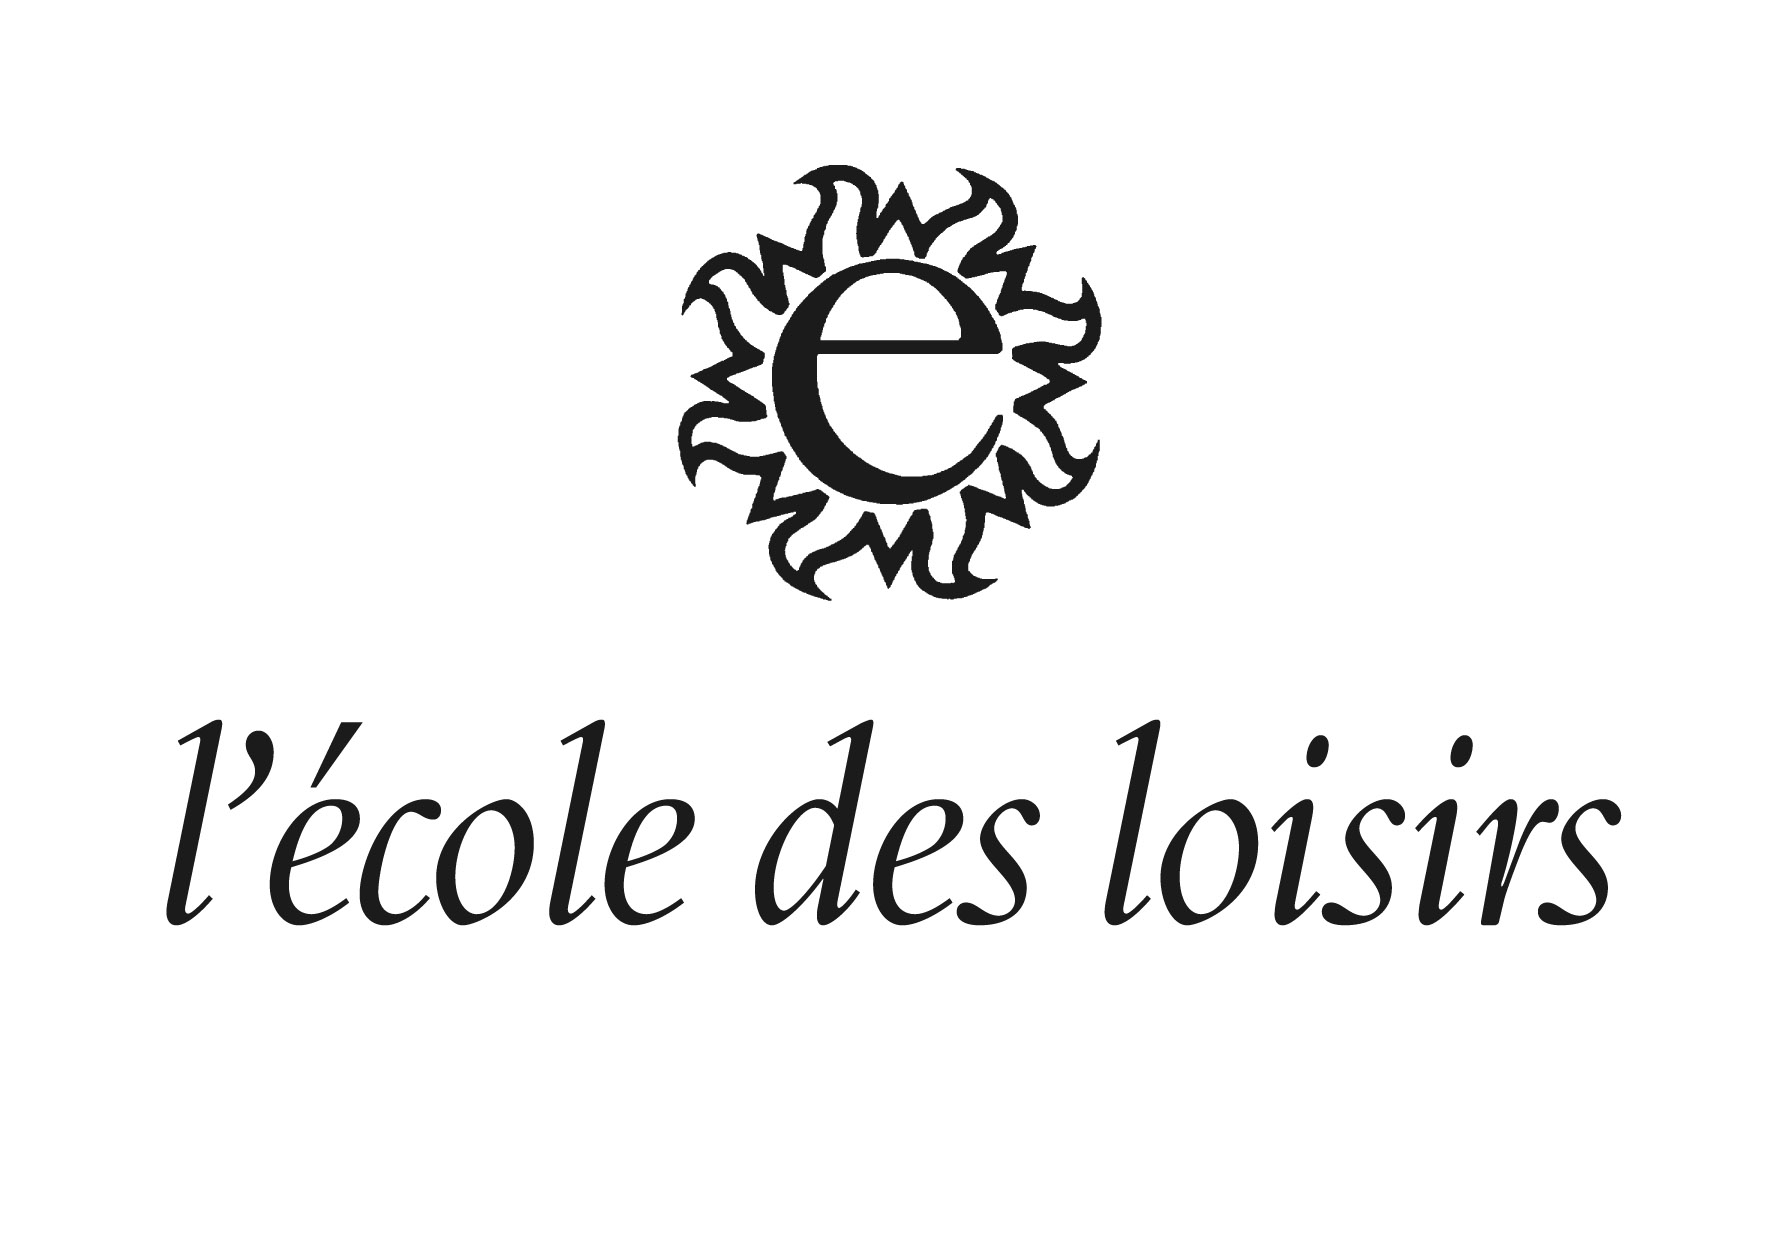 Ecole des loisirs